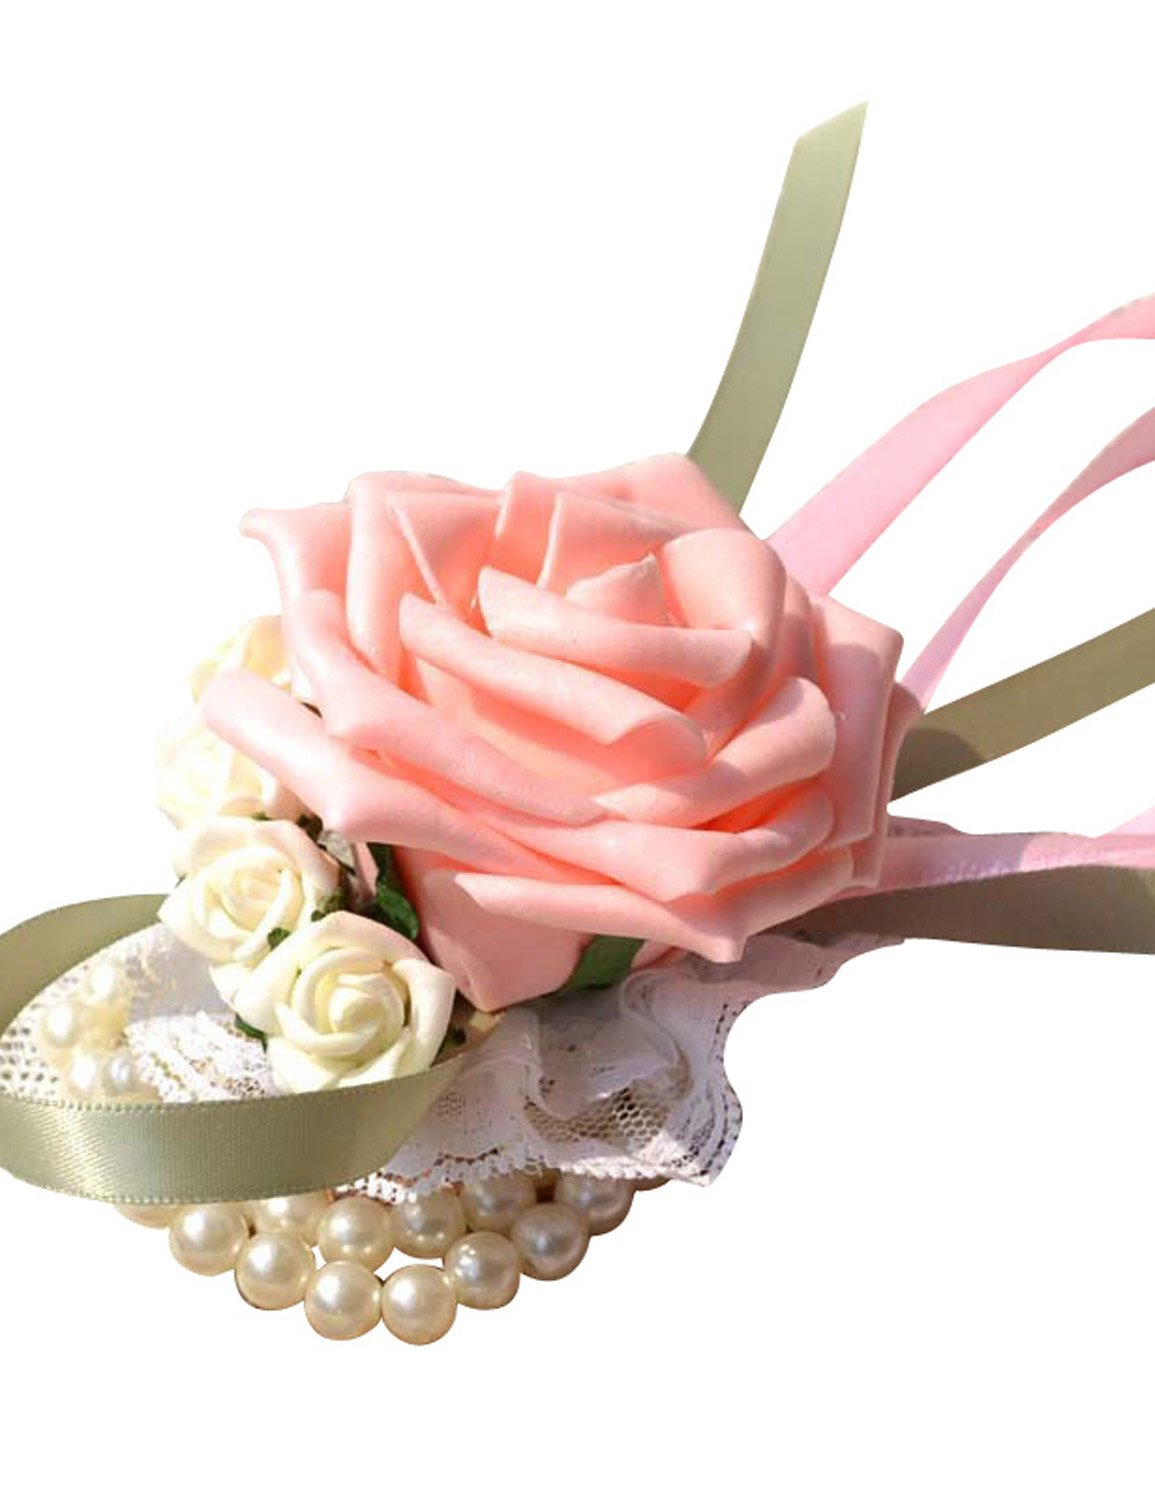 Bridal Flower Wrist Corsages: Amazon.co.uk